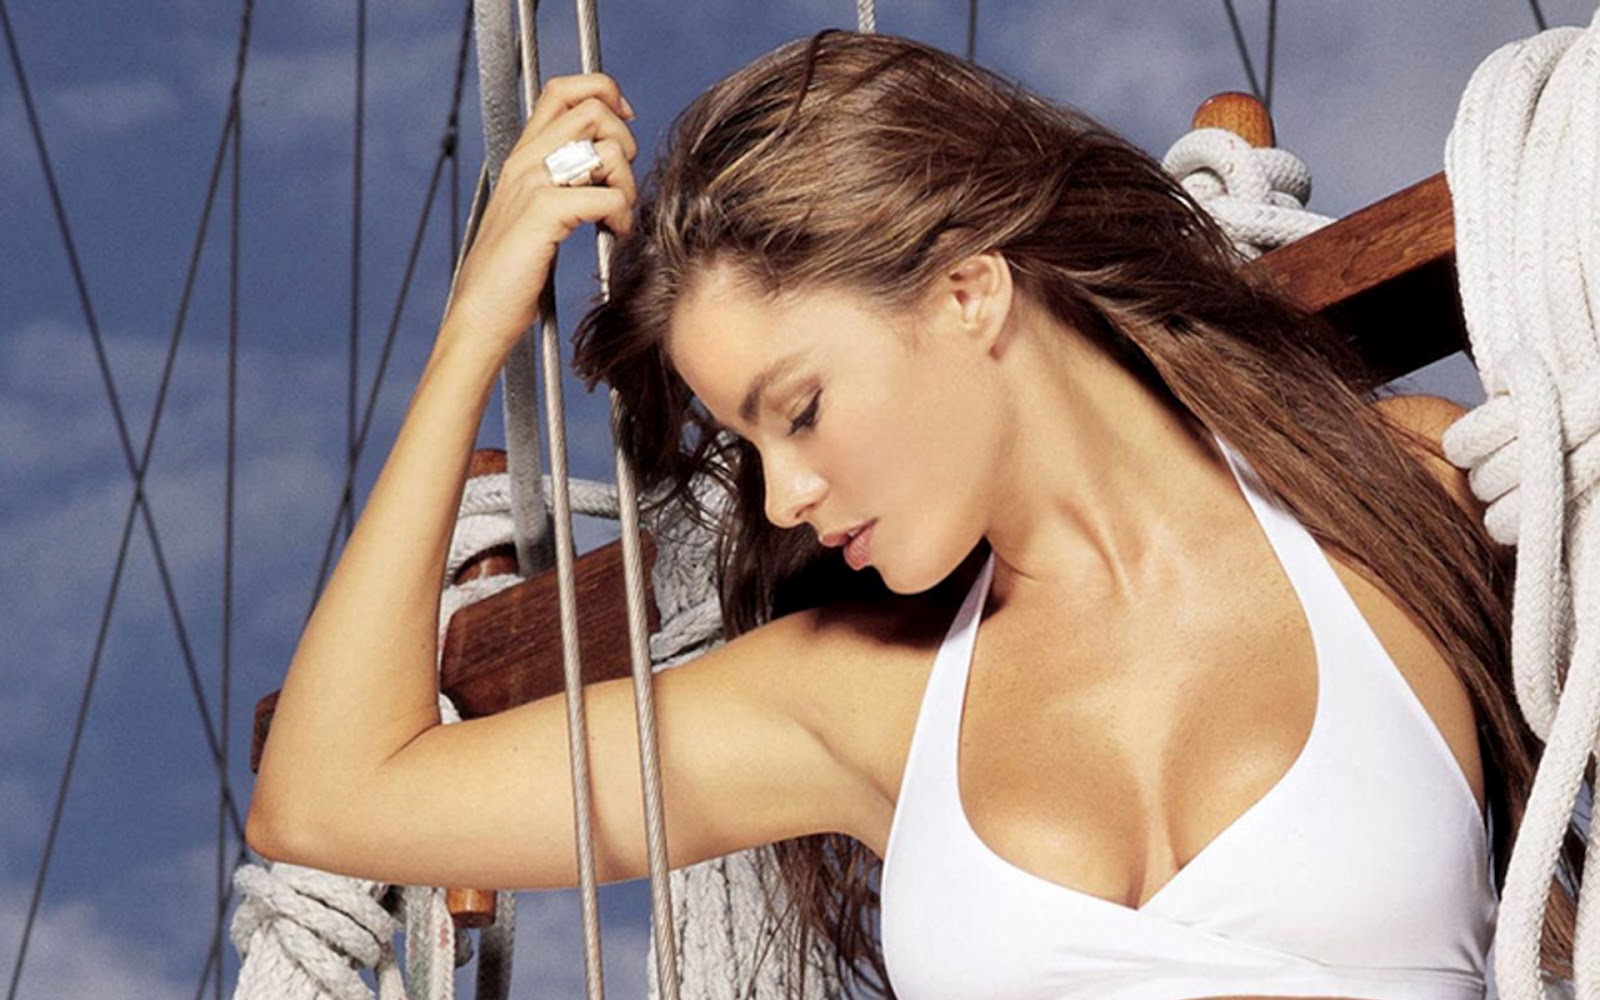 Sofia Vergara Soul Plane Sofia Vergara Wallpapers Windows 7 Sofia Vergara Wallpapers